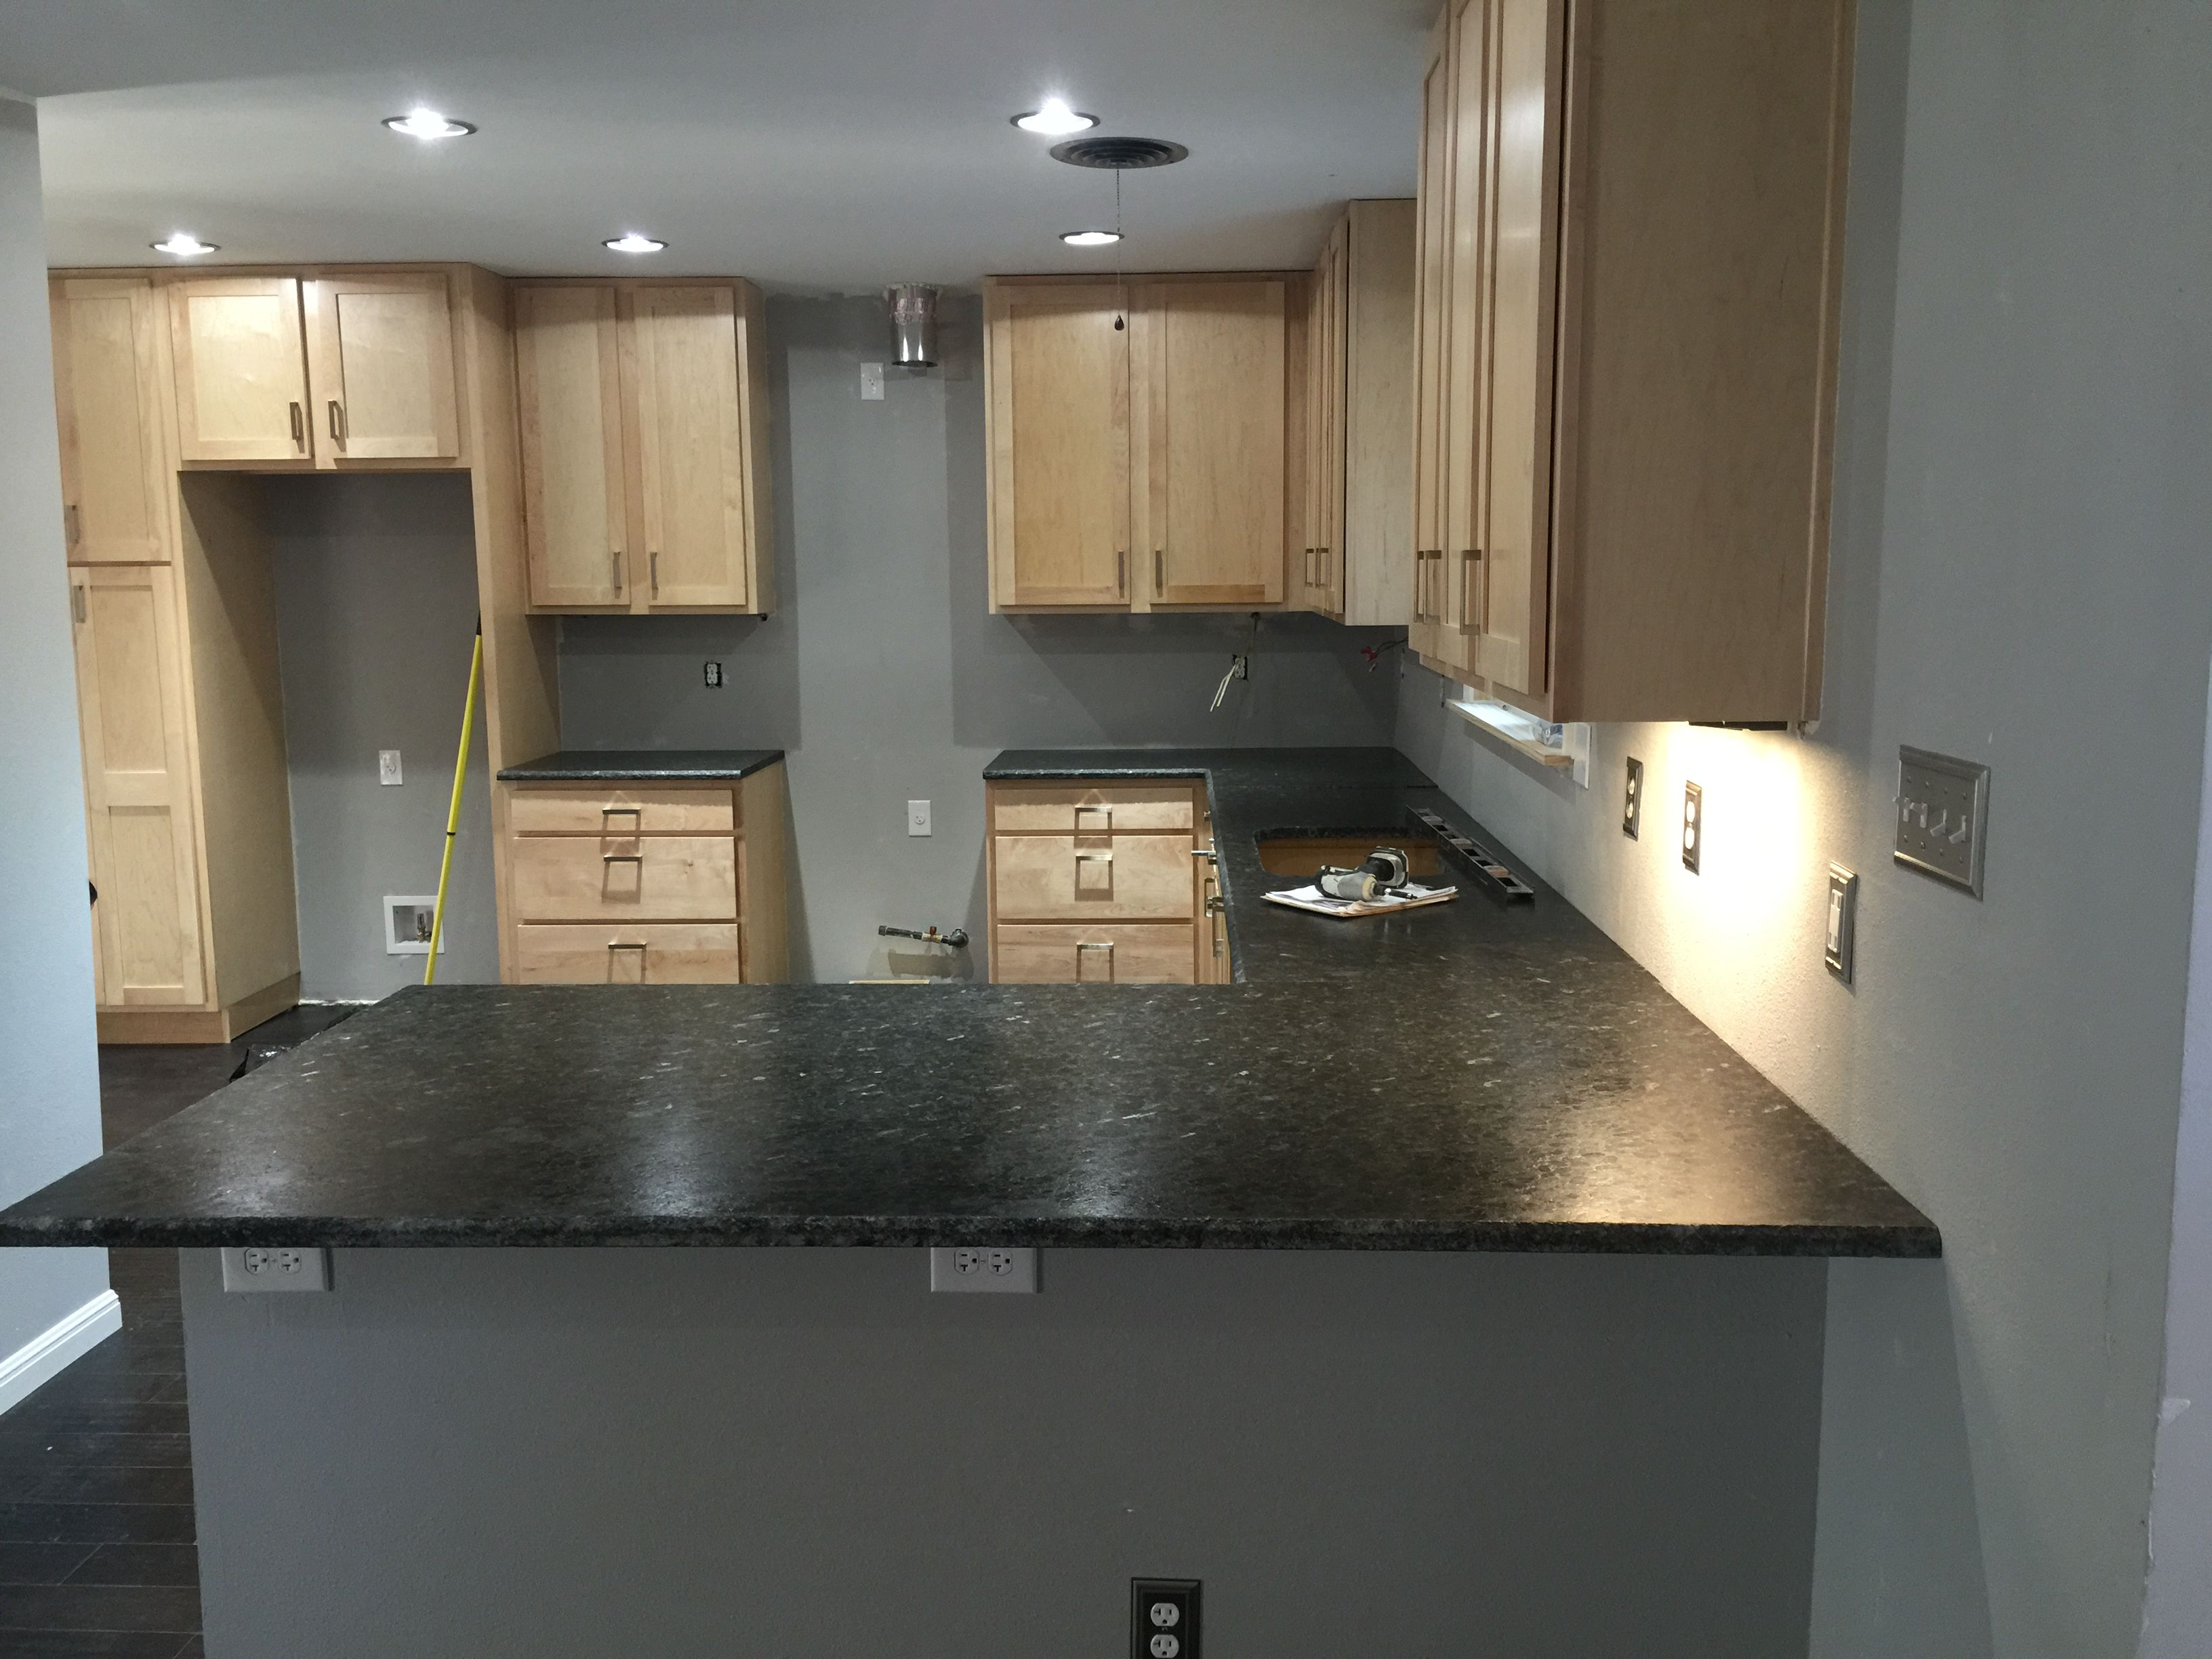 sight is seeking cost granite to in without have ultimate of installed for your articles ask kitchen when new countertops countertop options goal a top fabricator questions seam